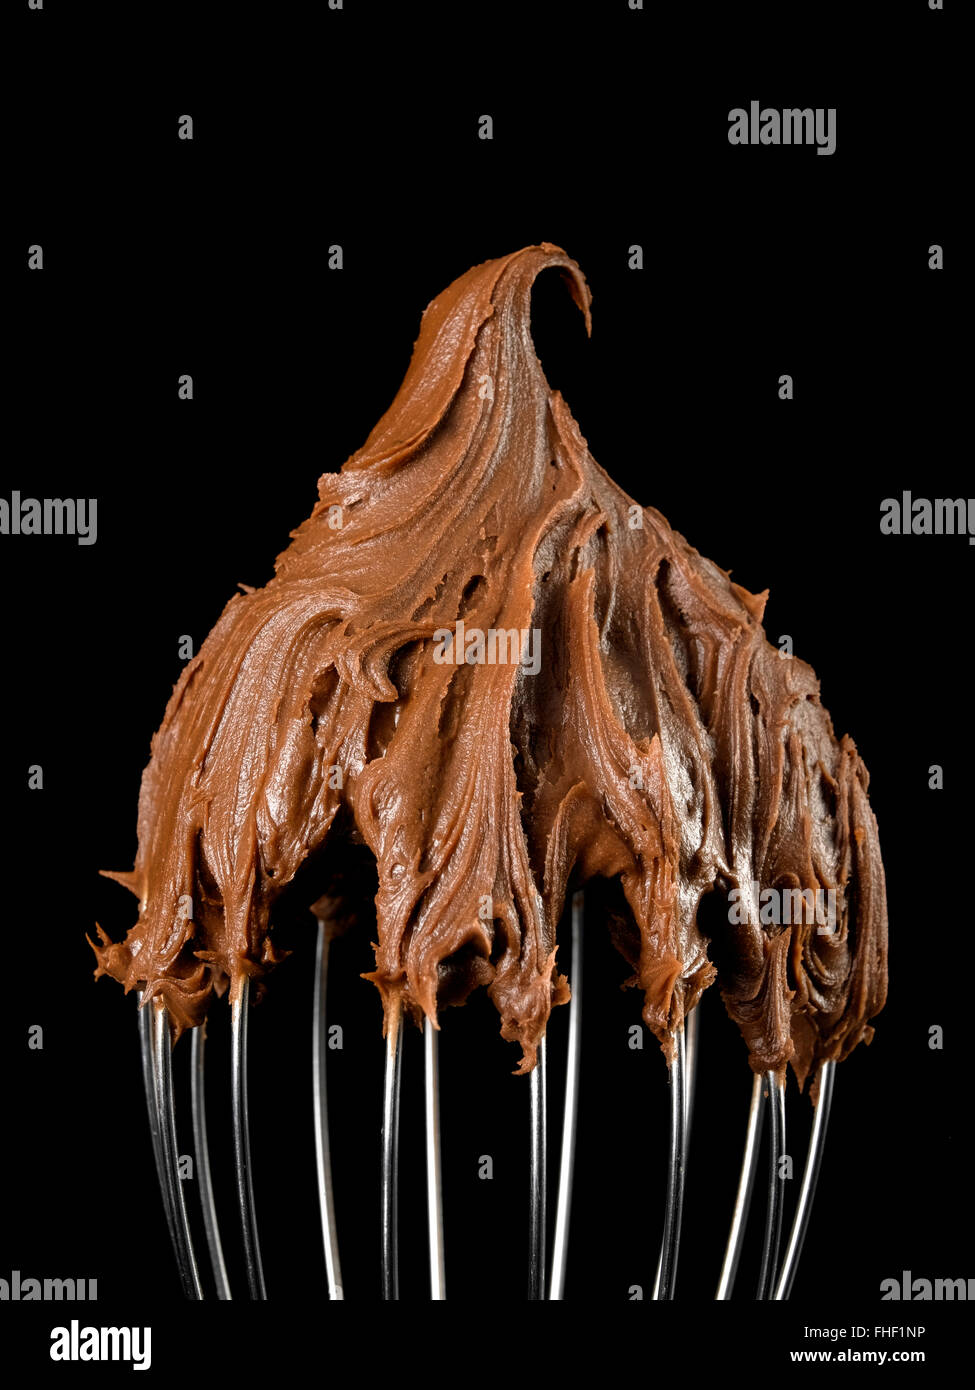 Kitchen whisk with Chocolate - Stock Image